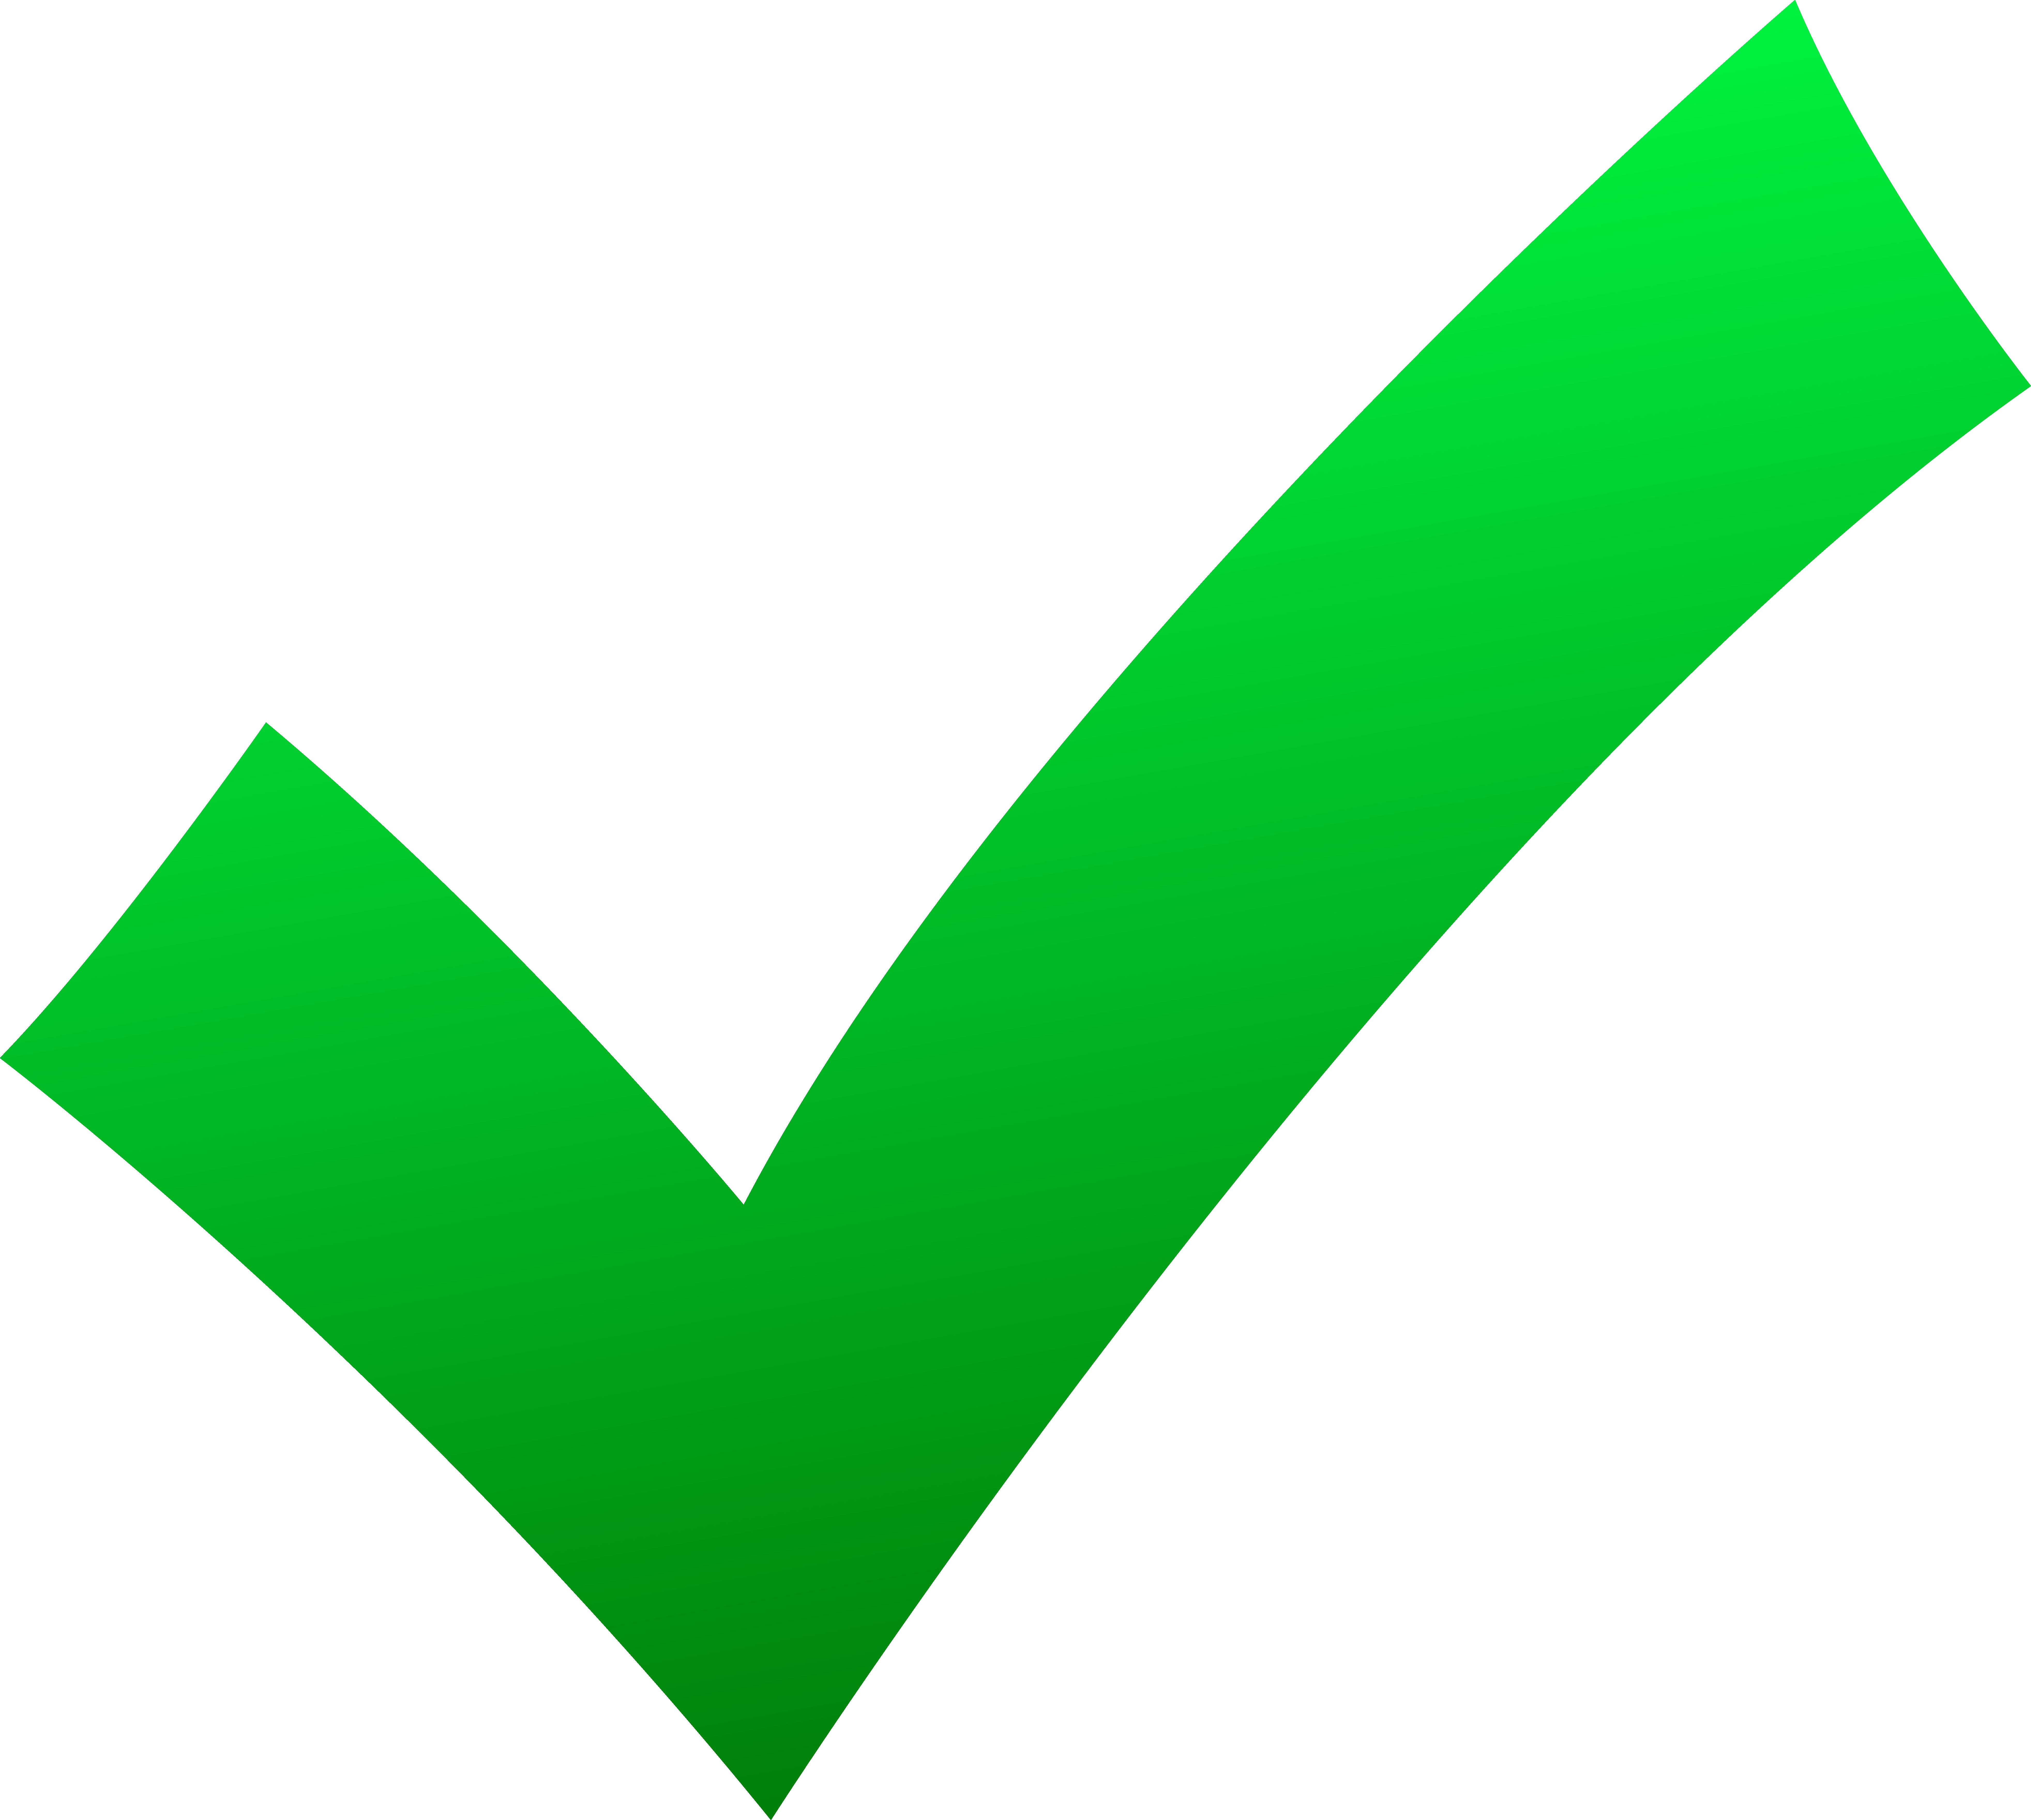 Checkmark clipart green. Awesome gallery digital collection